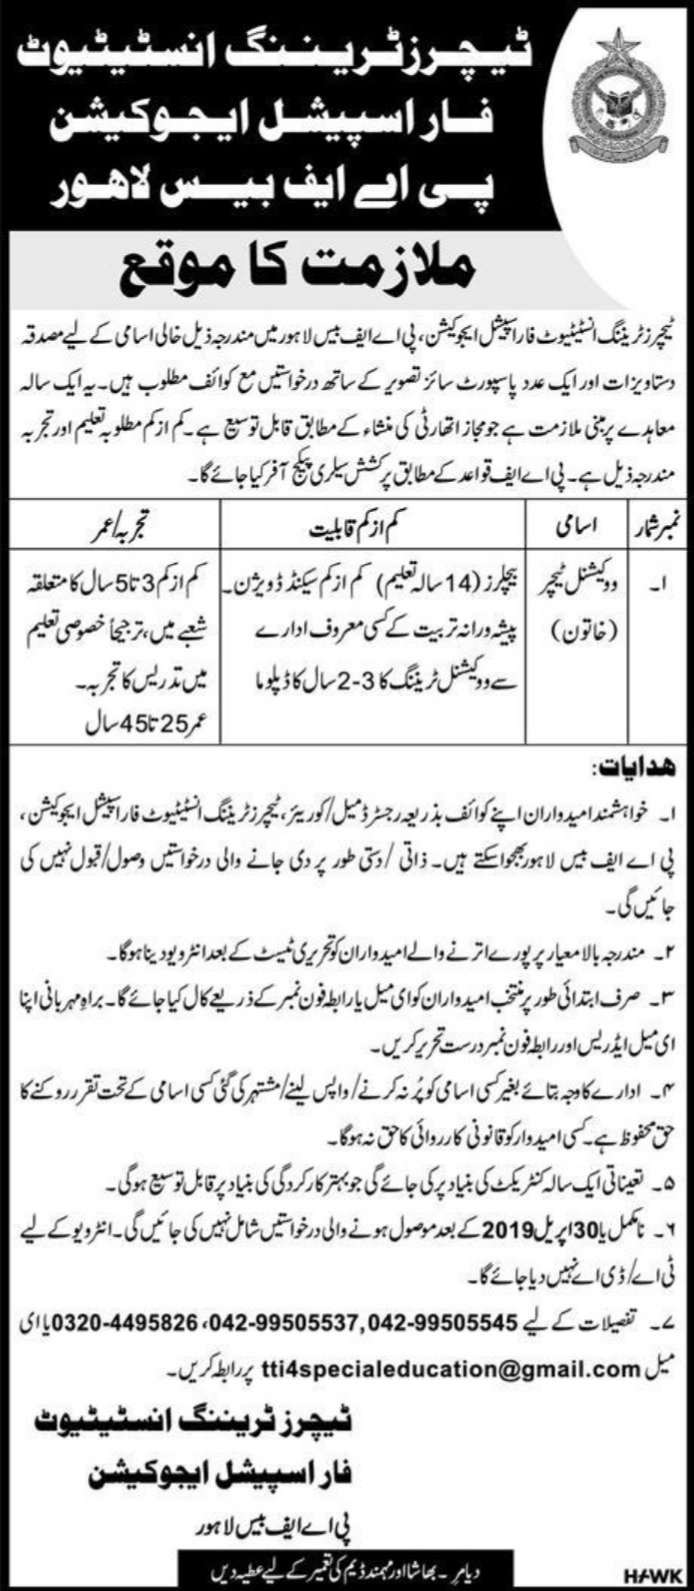 Teachers Training Institute for Special Education PAF Base Lahore Jobs 2019 Latest